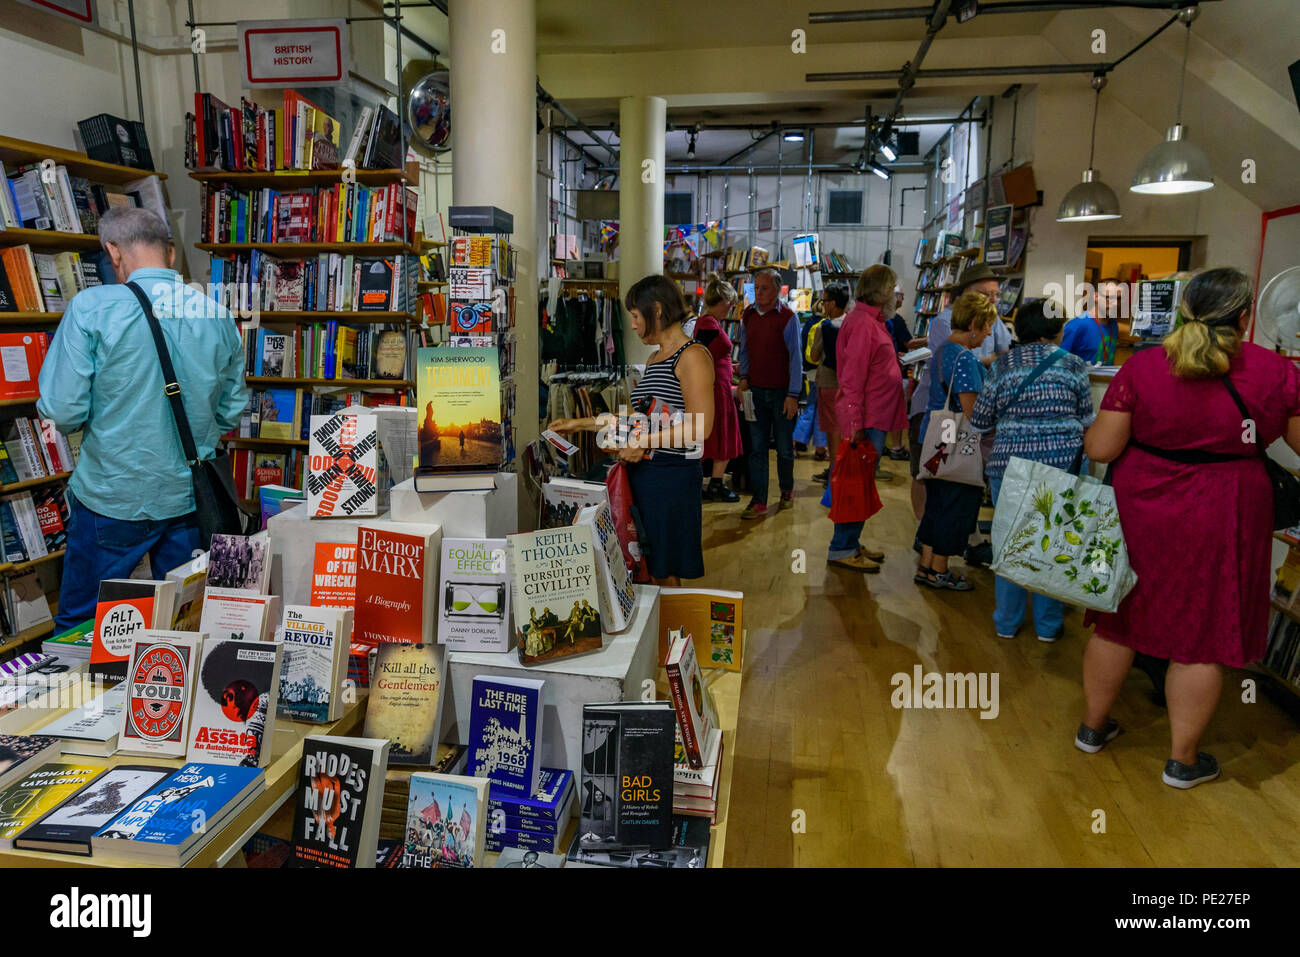 London, UK. 11th August 2018. 11th August 2018. Bookmarks socialist bookshop where several hundred people from all parts of the labour movement came to show solidarity and support a week after a group of Nazi thugs from 'Make Britain Great Again' invaded the shop in central London, shouting racist slogans and wrecking book displays. Credit: ZUMA Press, Inc./Alamy Live News - Stock Image